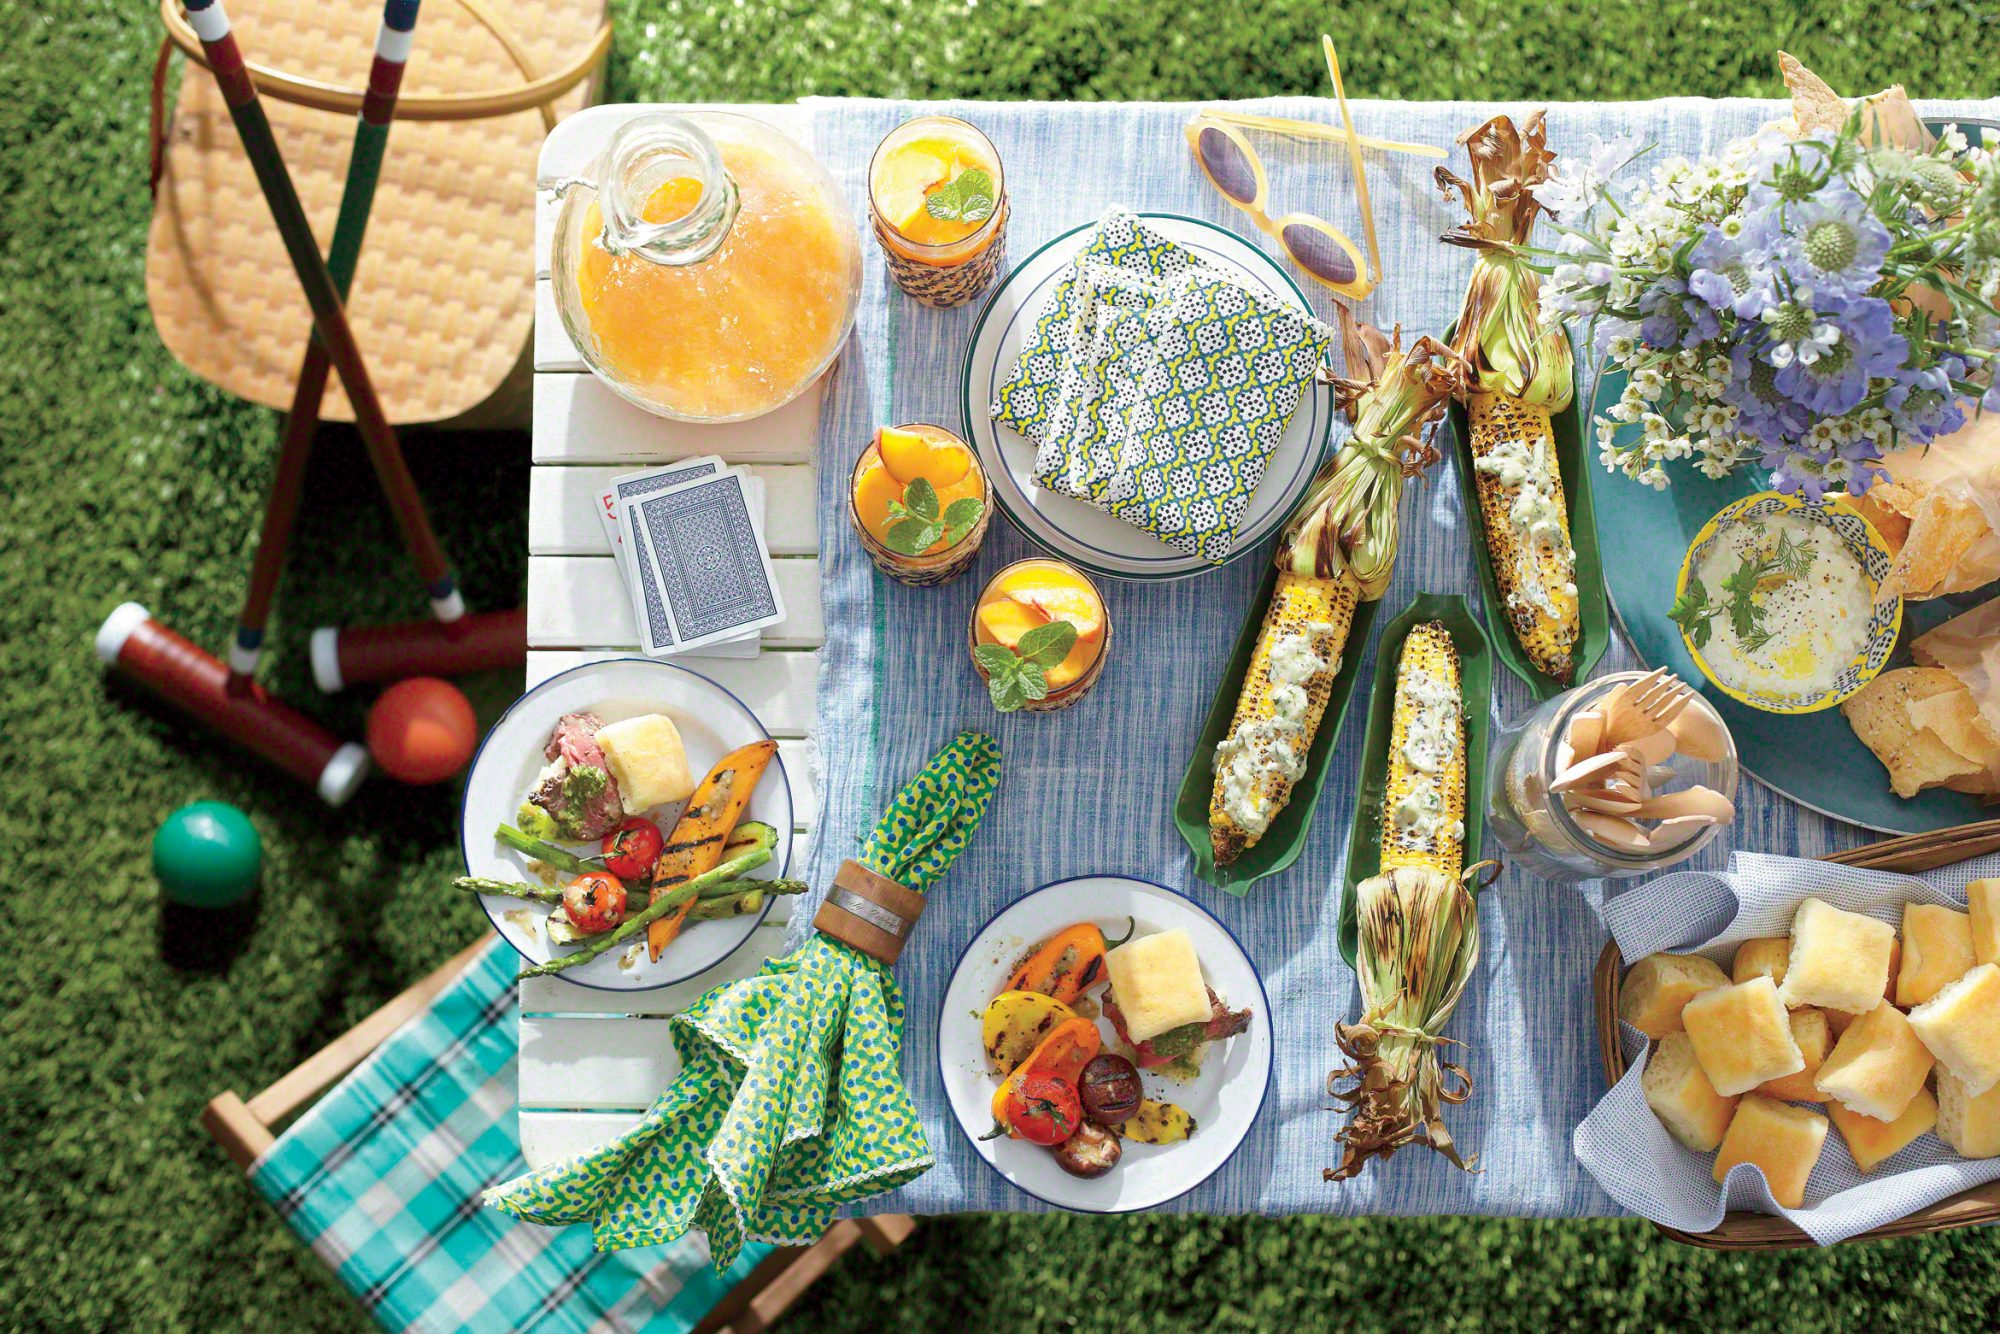 Host a Backyard Bash